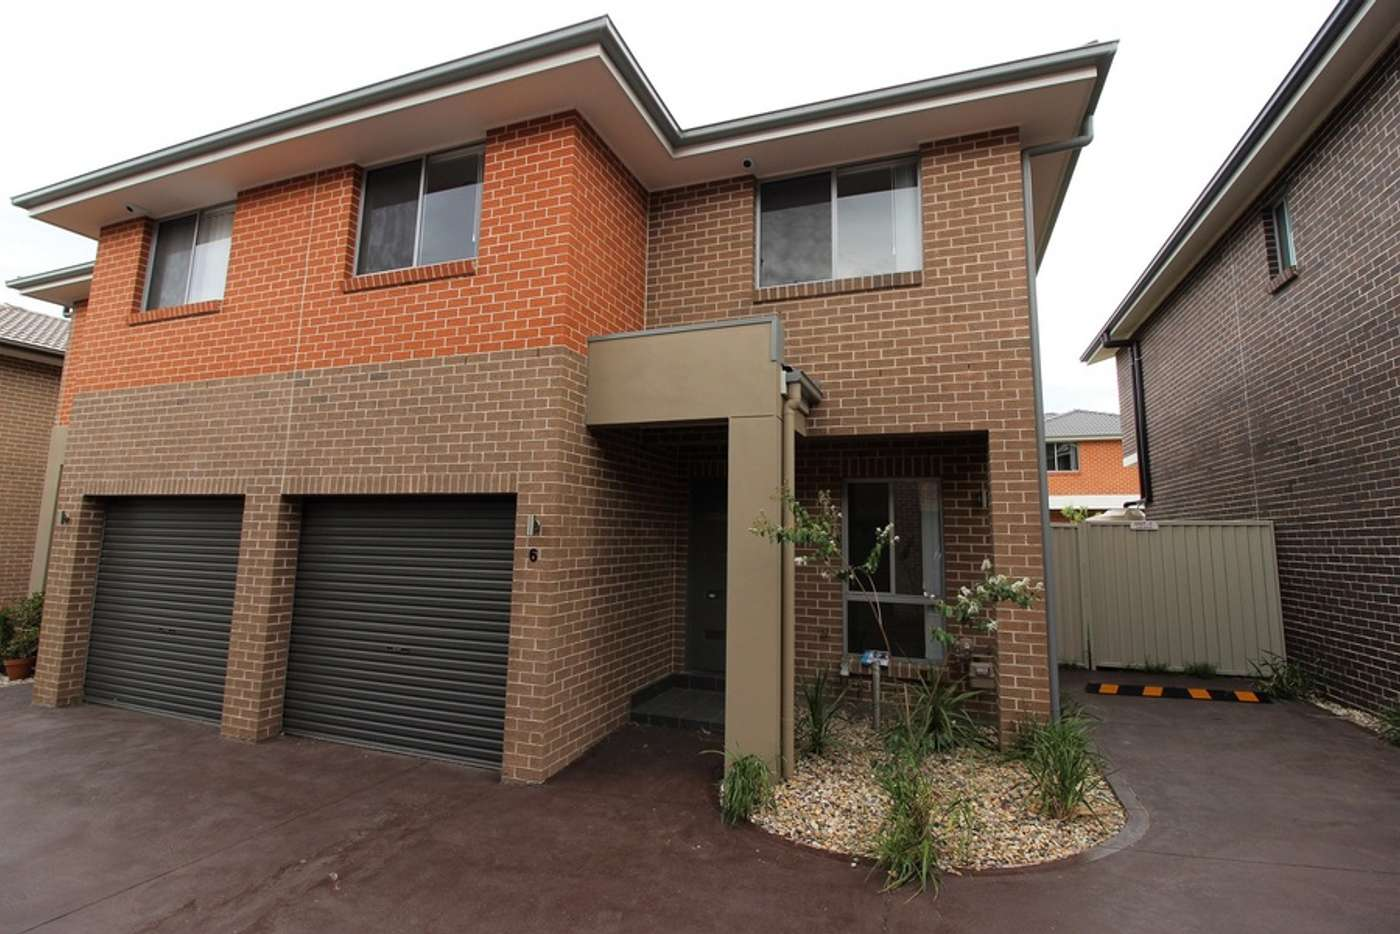 Main view of Homely townhouse listing, 6 Varsha Glade, Woodcroft NSW 2767